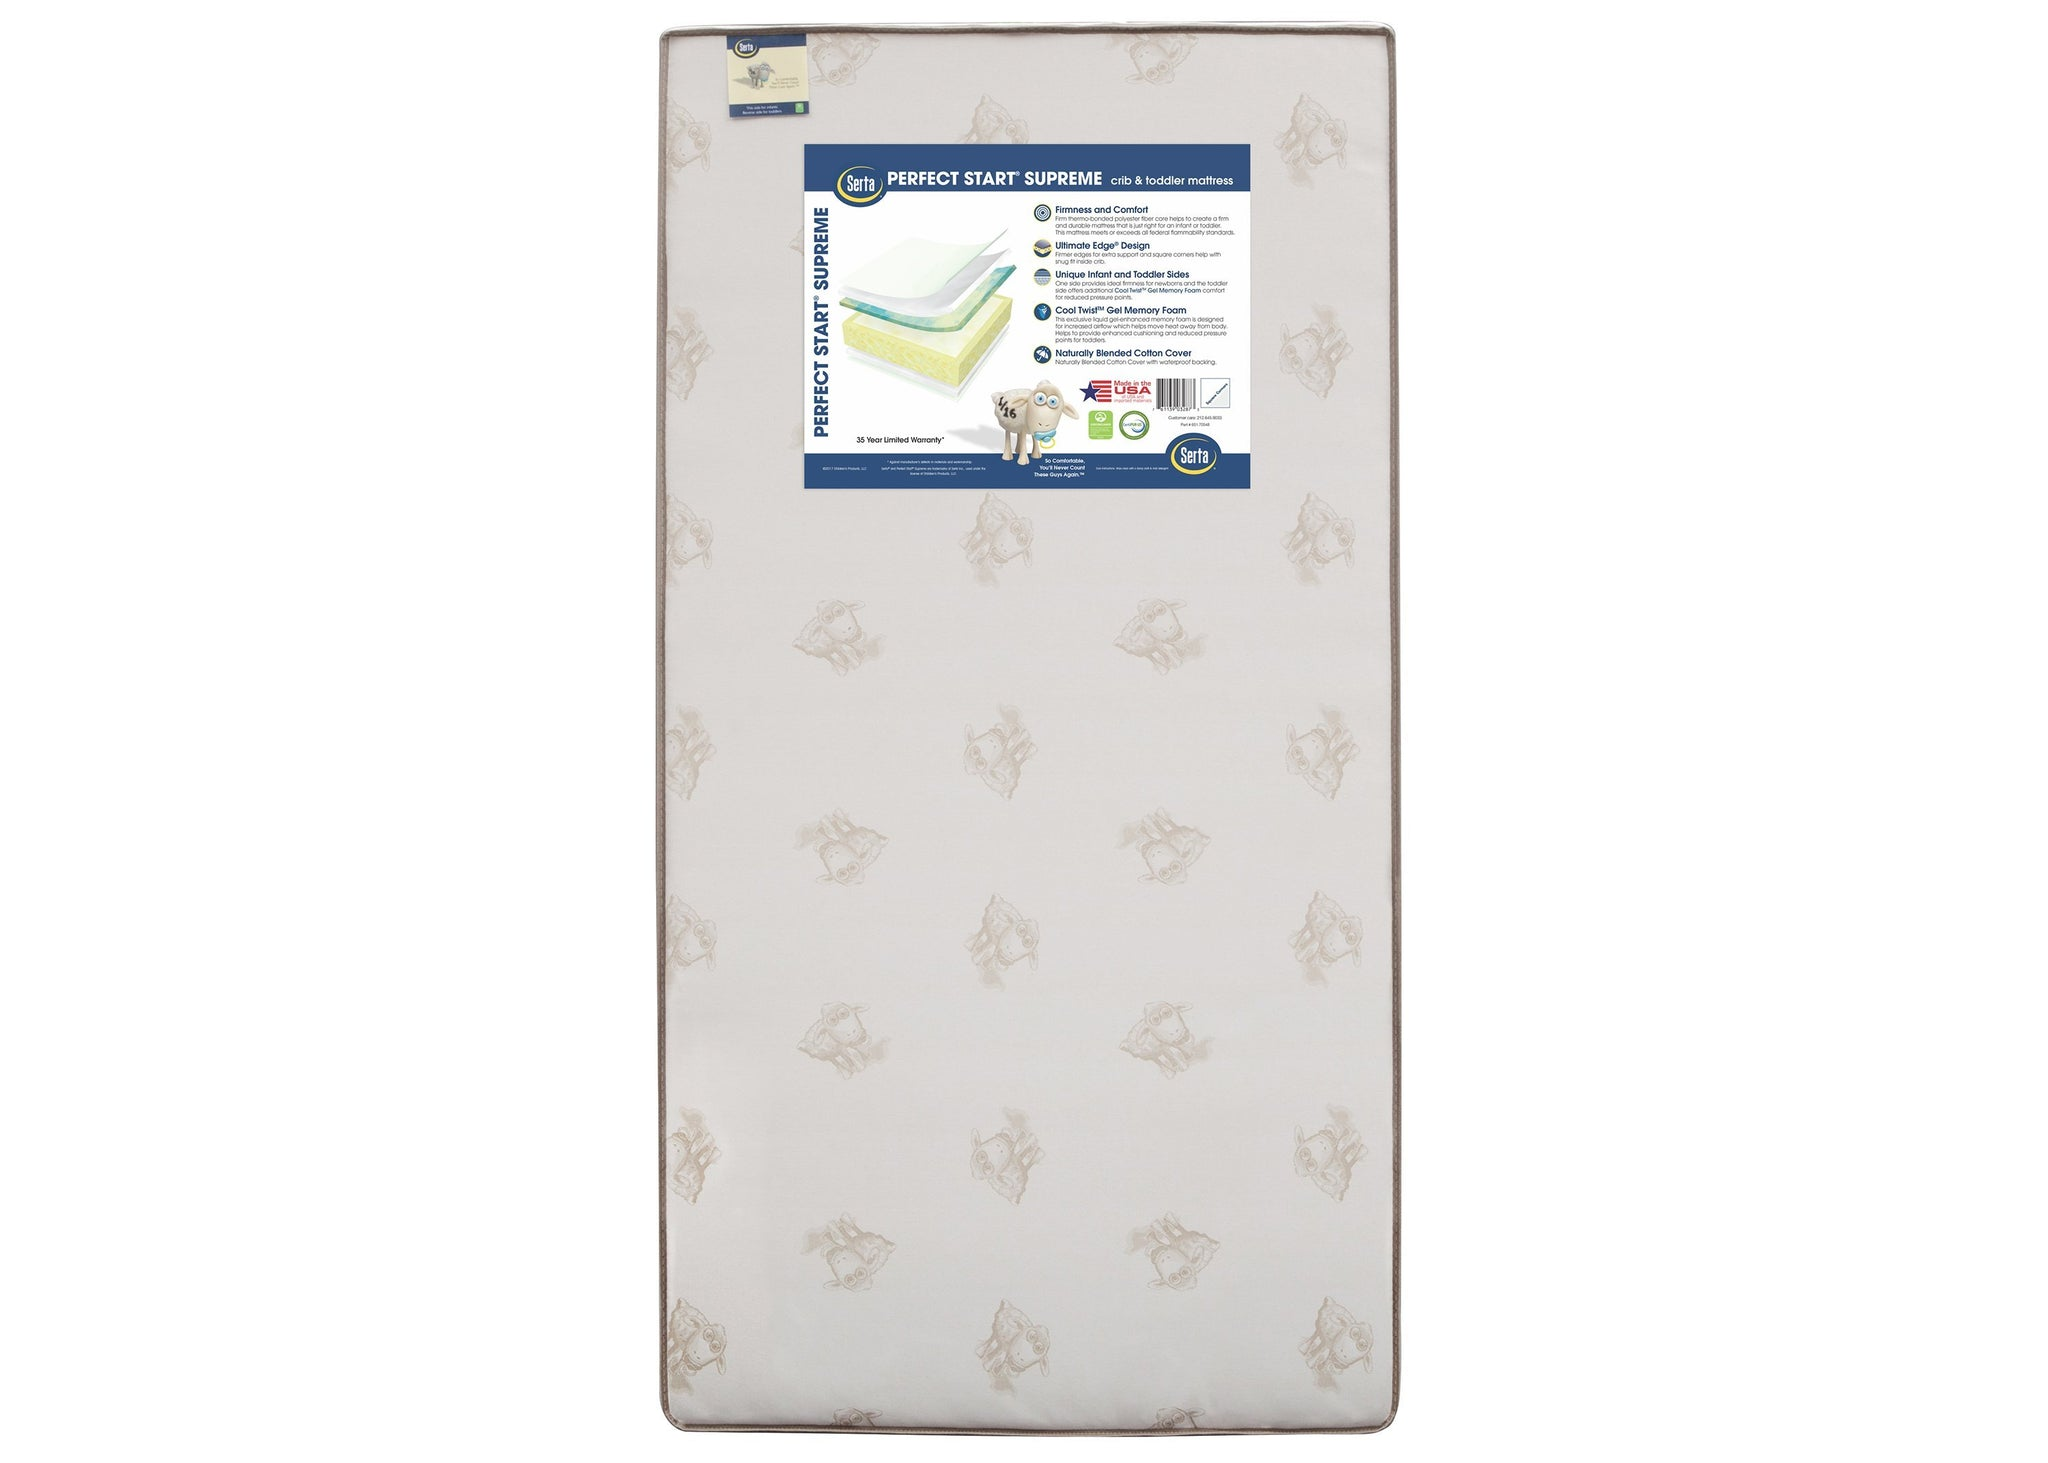 Serta Perfect Start Supreme Crib & Toddler Mattress, Front View, a3a No Color (NO)